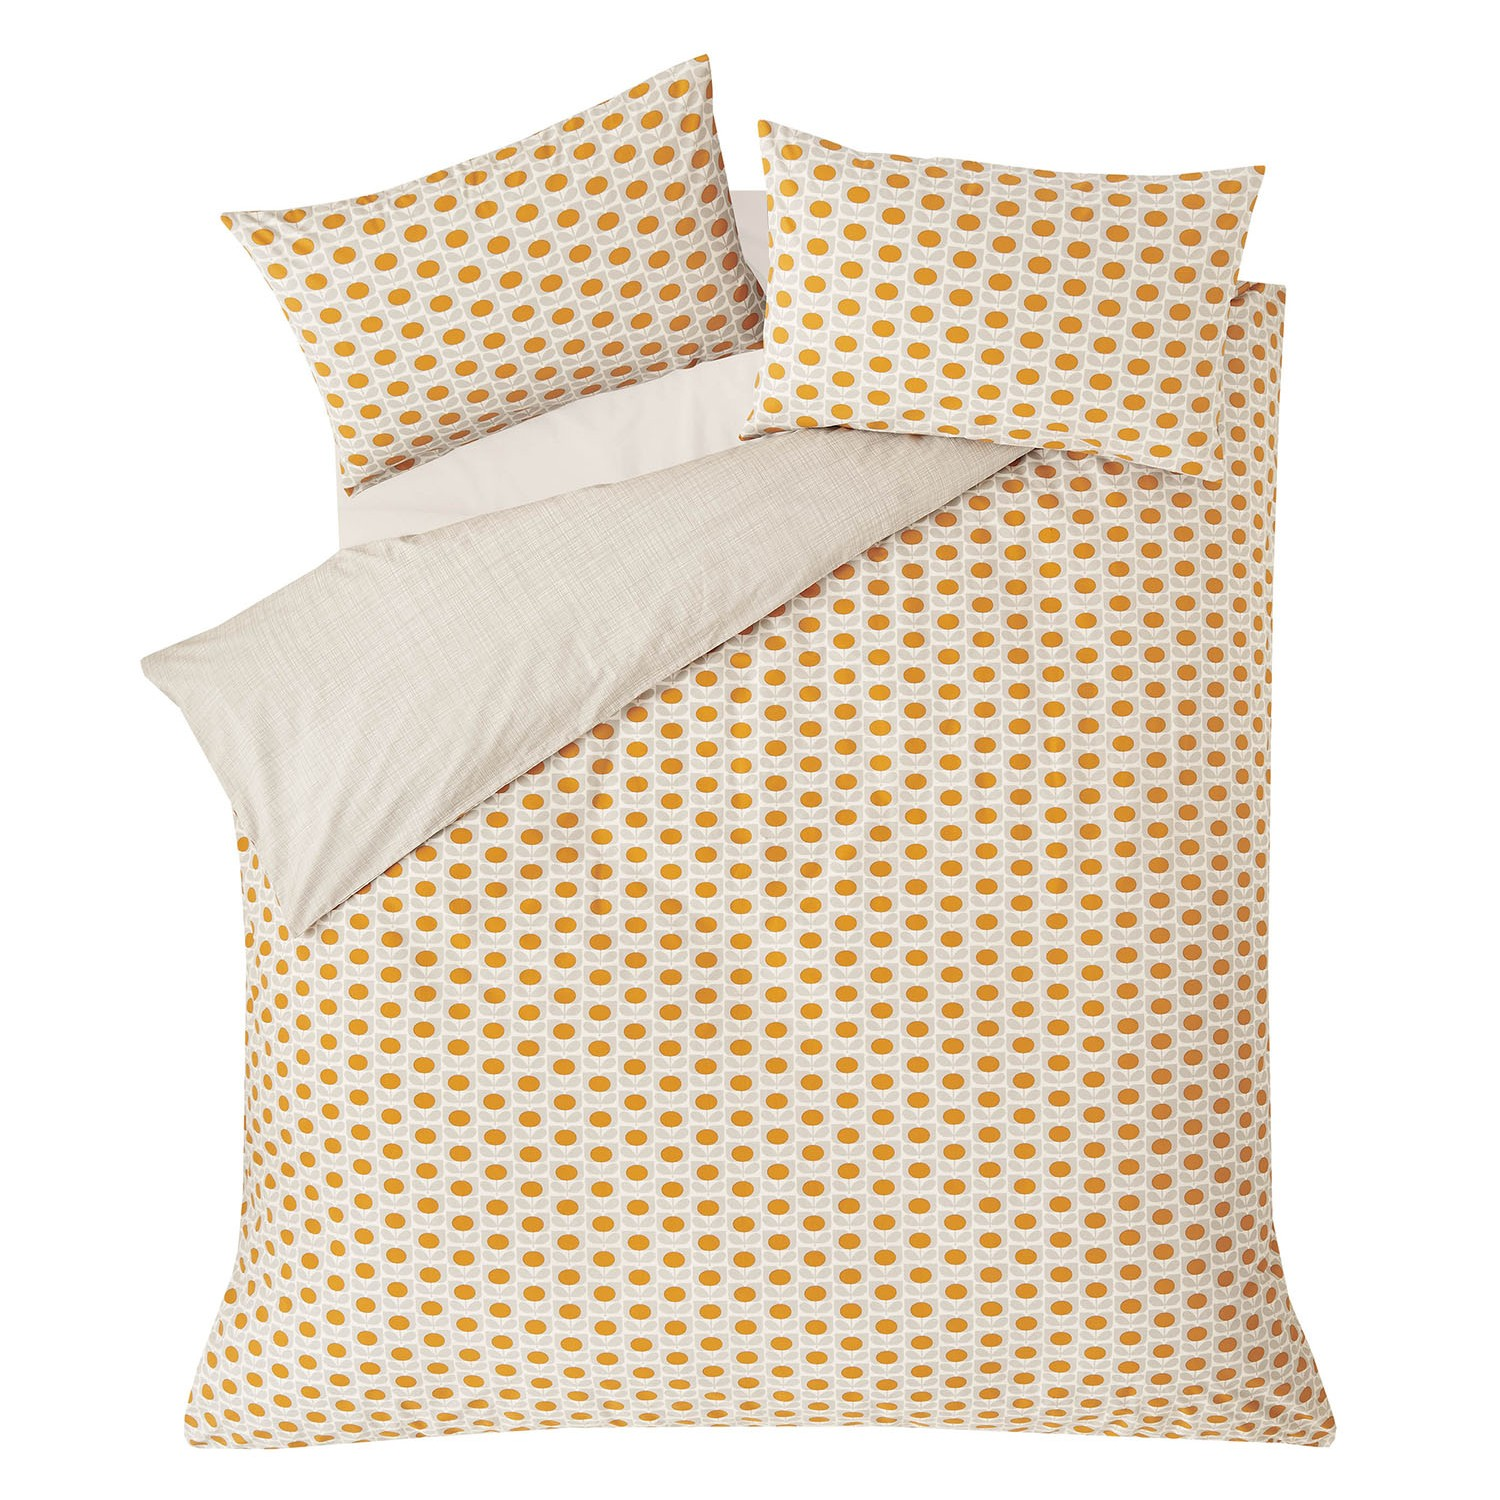 Orla kiely single duvet cover